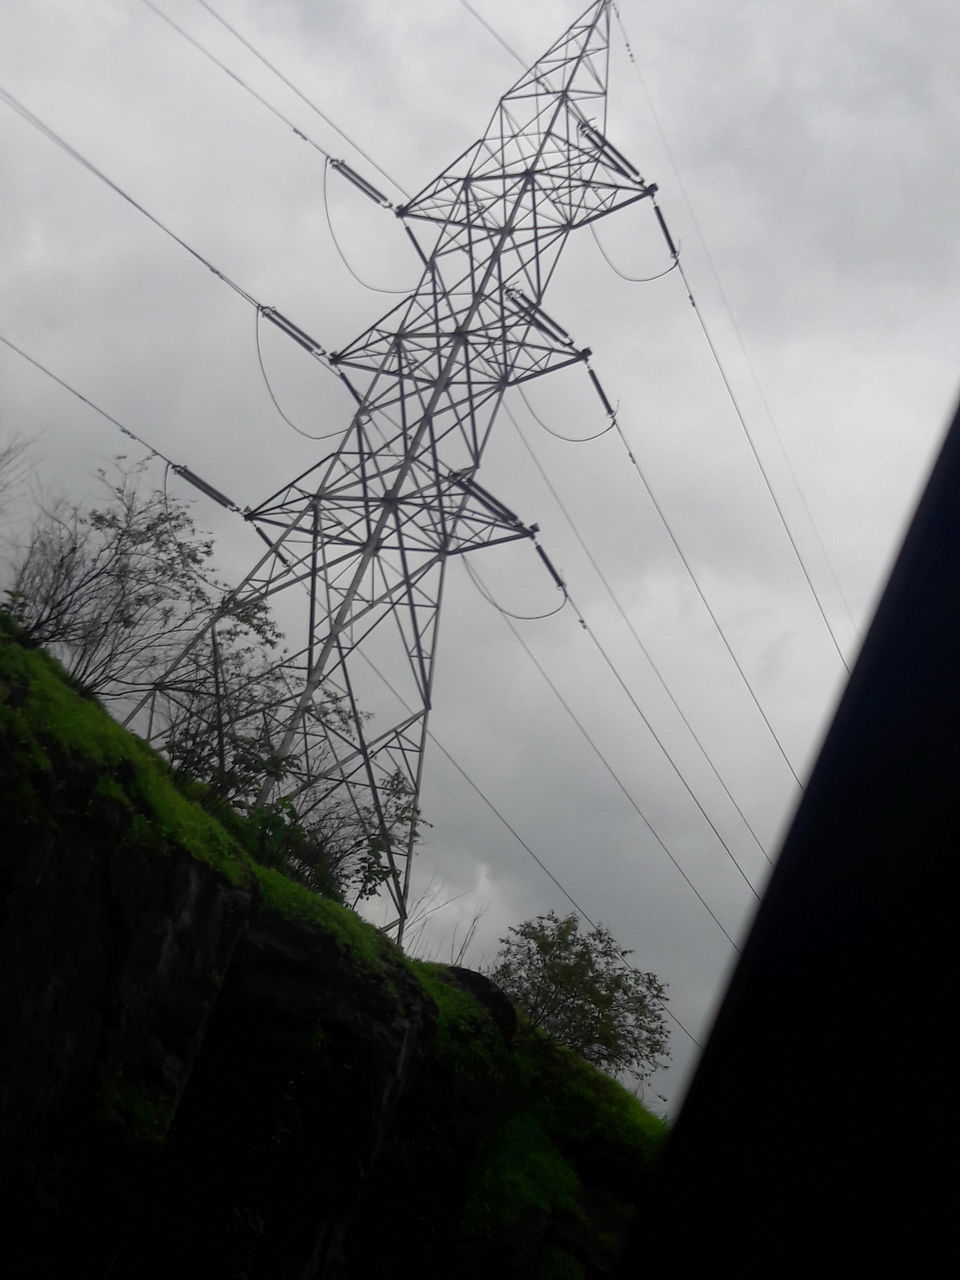 sky, low angle view, connection, no people, cable, outdoors, cloud - sky, day, nature, bare tree, tree, beauty in nature, electricity pylon